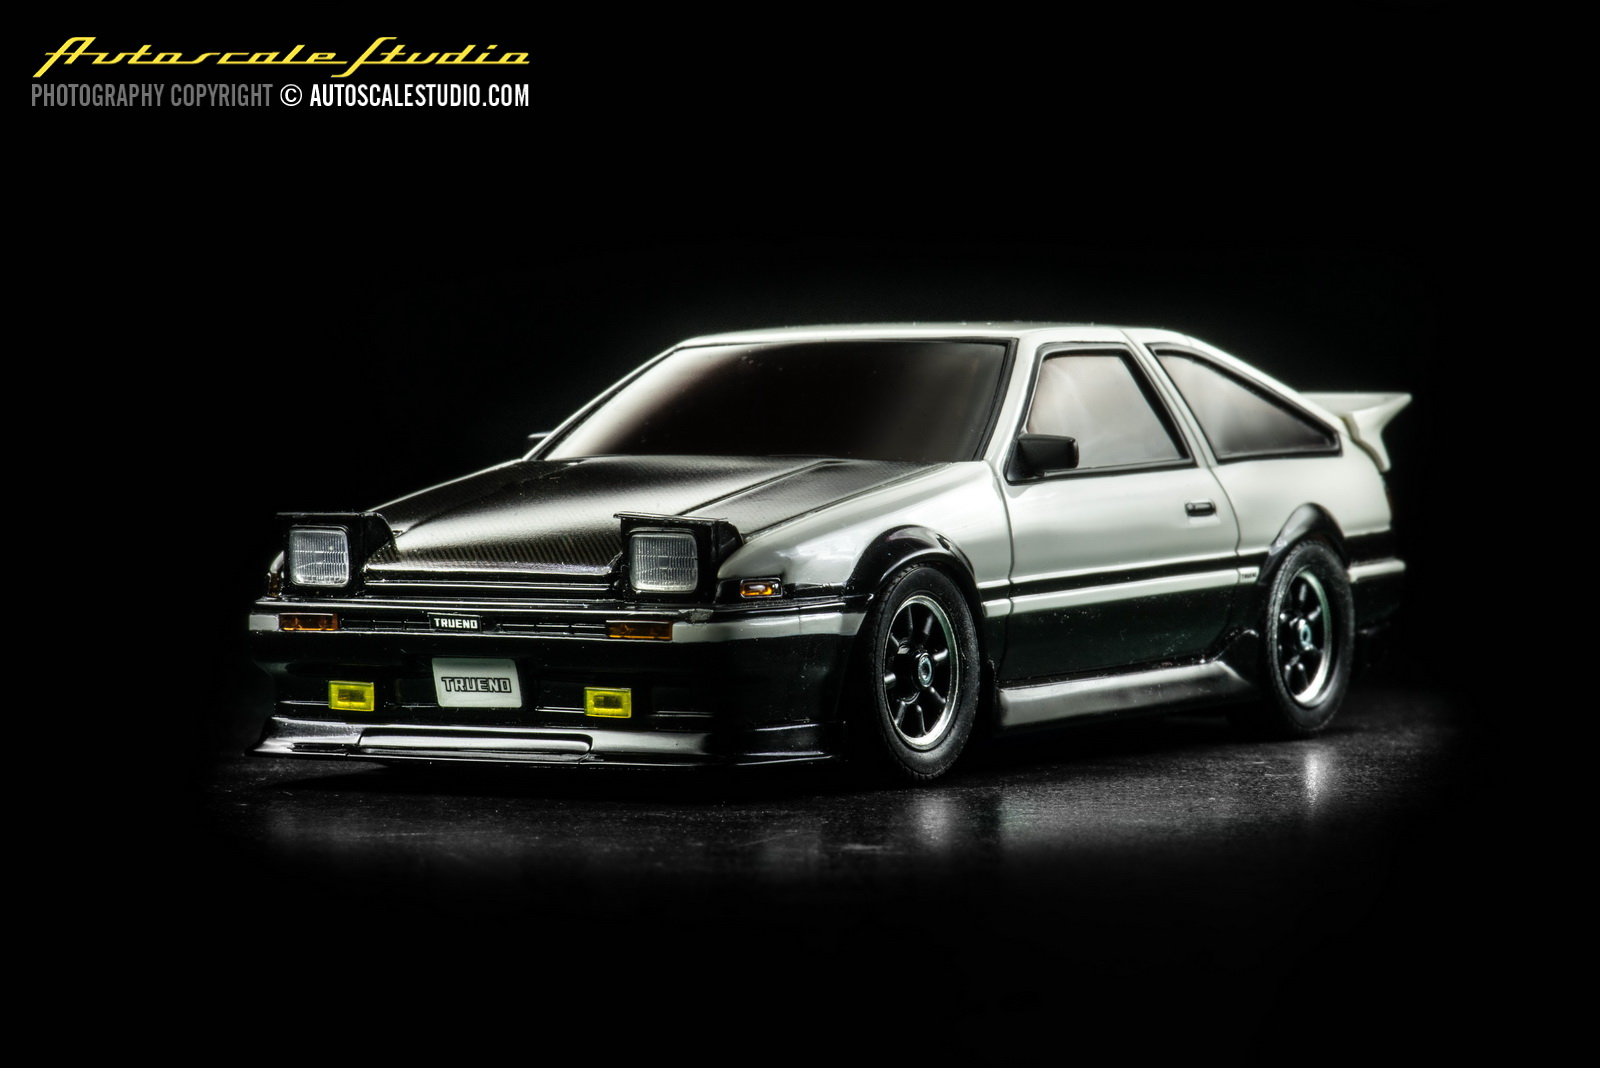 autoscale studio mzp410cw toyota sprinter trueno ae86 panda carbon bonnet. Black Bedroom Furniture Sets. Home Design Ideas